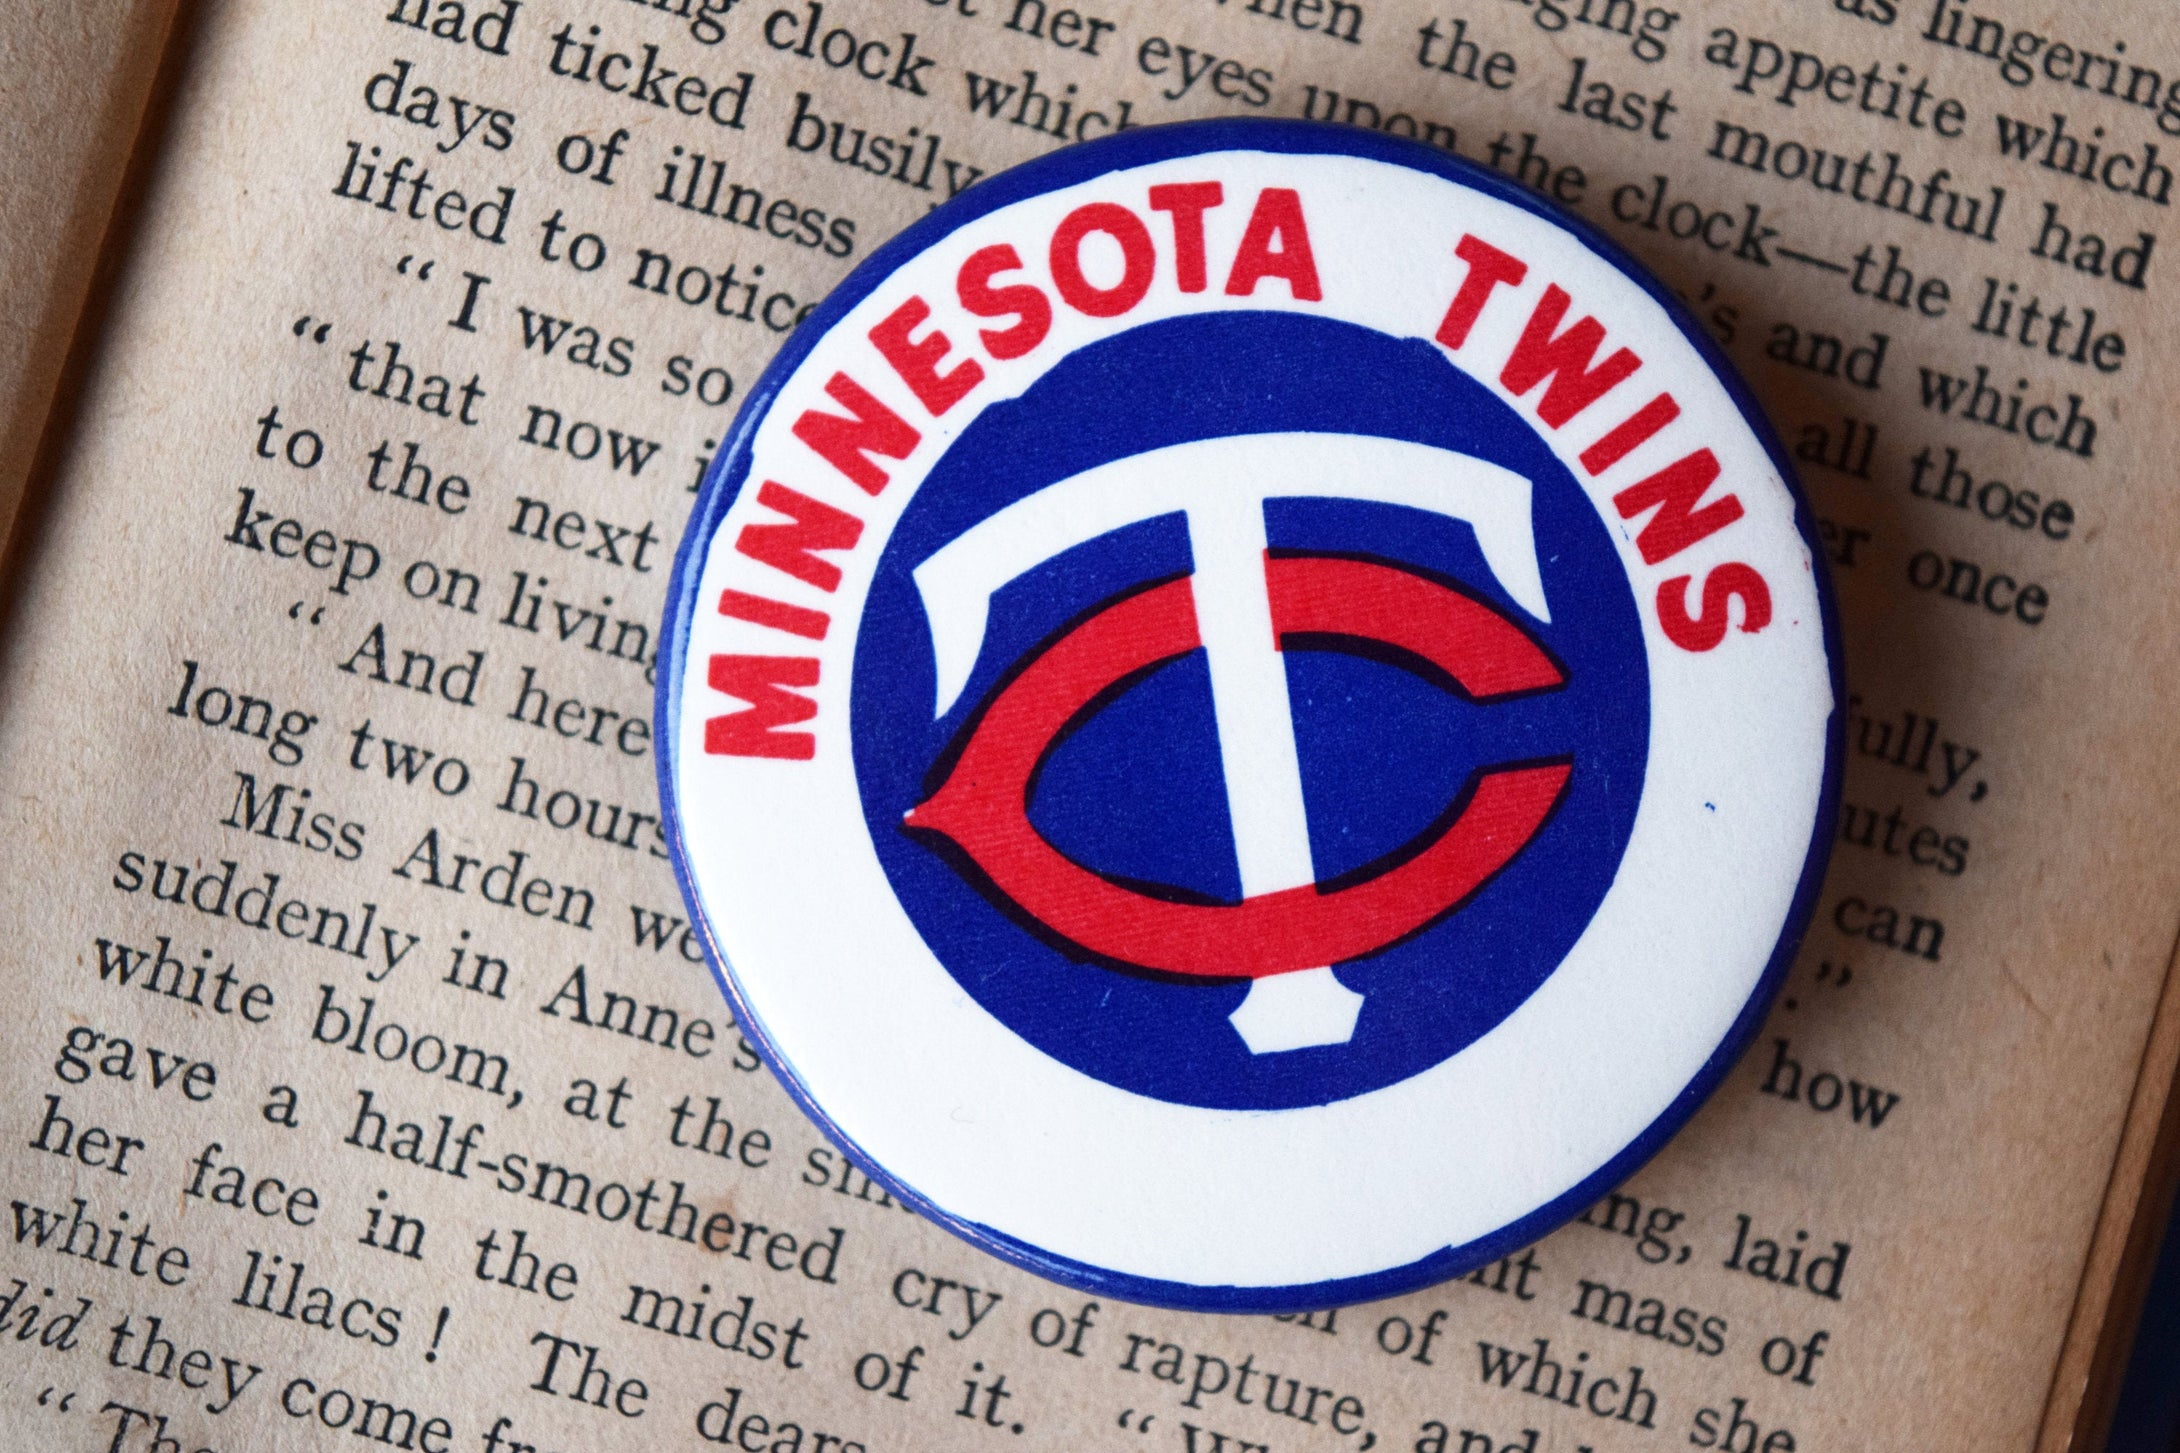 Minnesota Twins MLB Button Top Lapel Pin - Vintage Badge - Major League Baseball Memorabilia